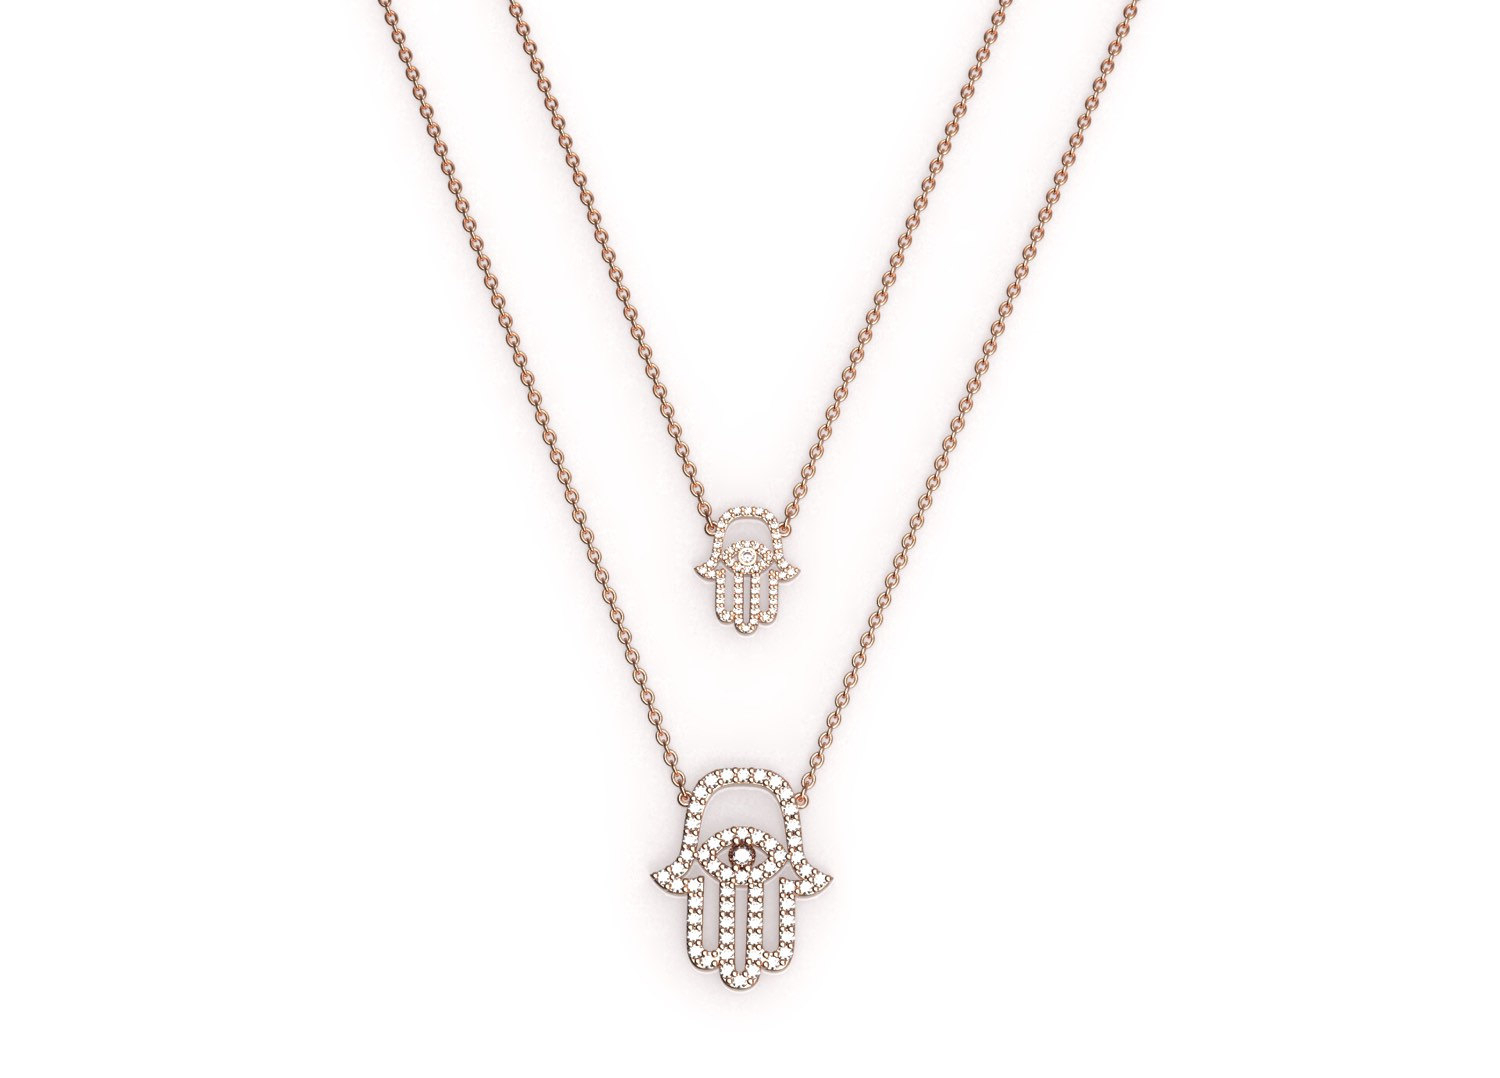 Medium Rose Gold And Diamond Hamsa Pendant On A Dainty Necklace, Hamsa Diamond Pendant, Evil Eye Necklace, Dainty Diamond Necklace, 18k Gold In Most Up To Date Medium Diamond Necklaces (View 18 of 25)